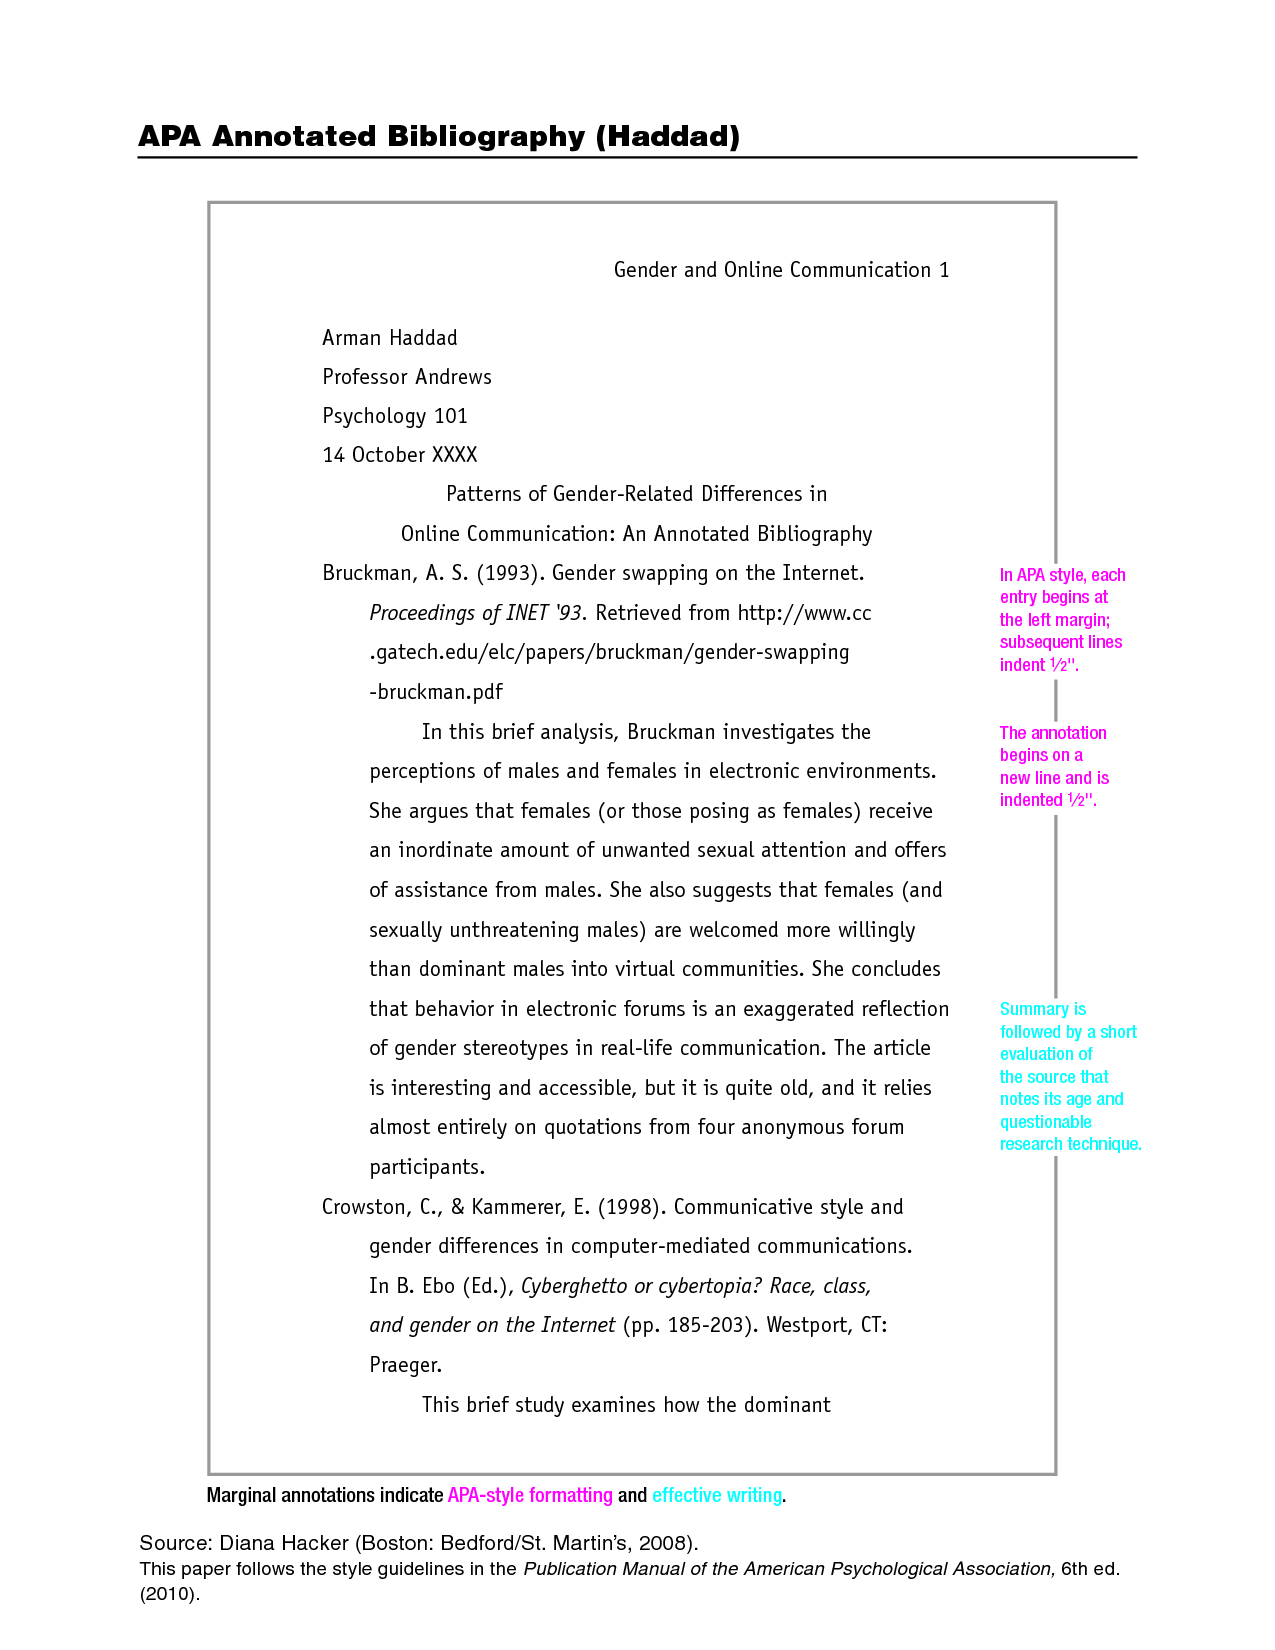 Organizing Your Social Sciences Research Paper: Limitations of the Study